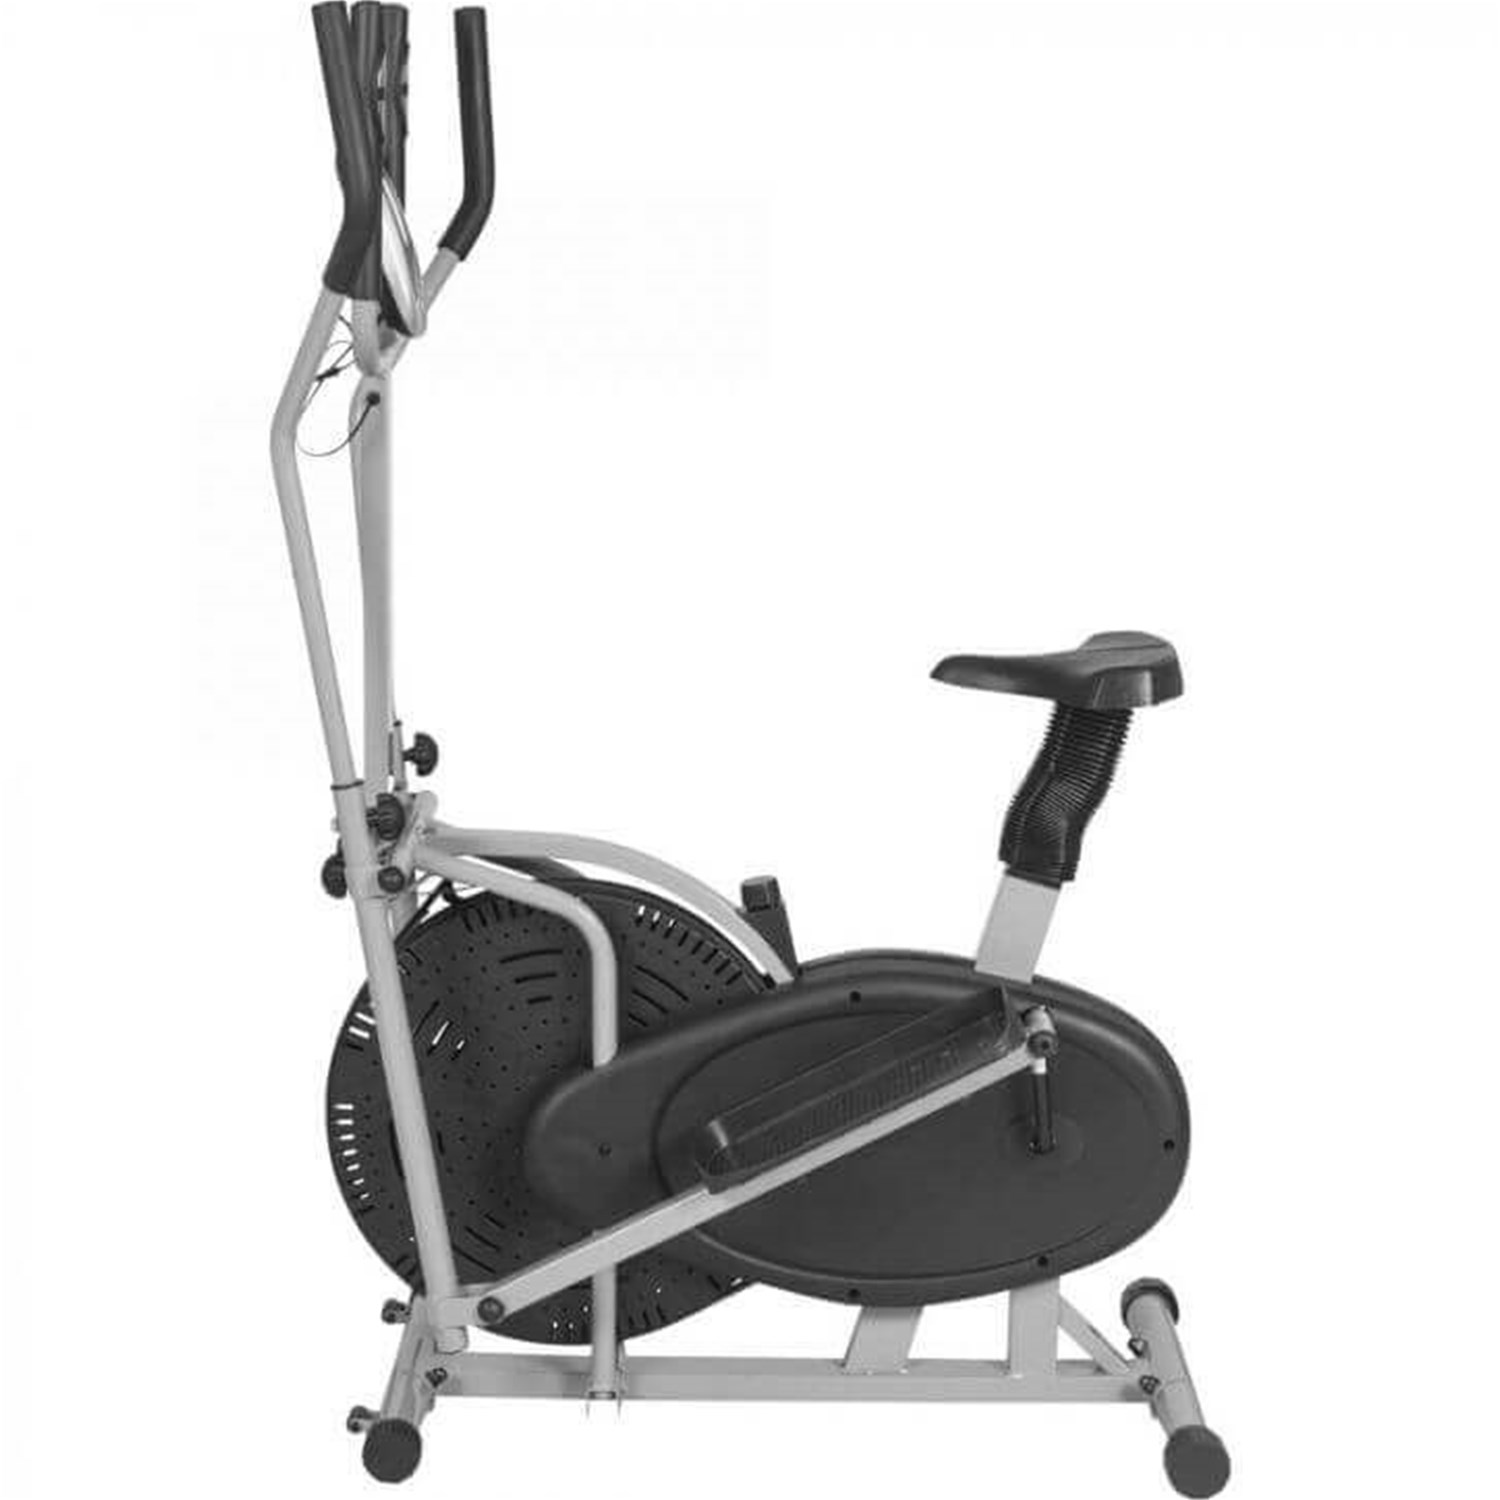 Crosstrainer Eliptical Bike - 4